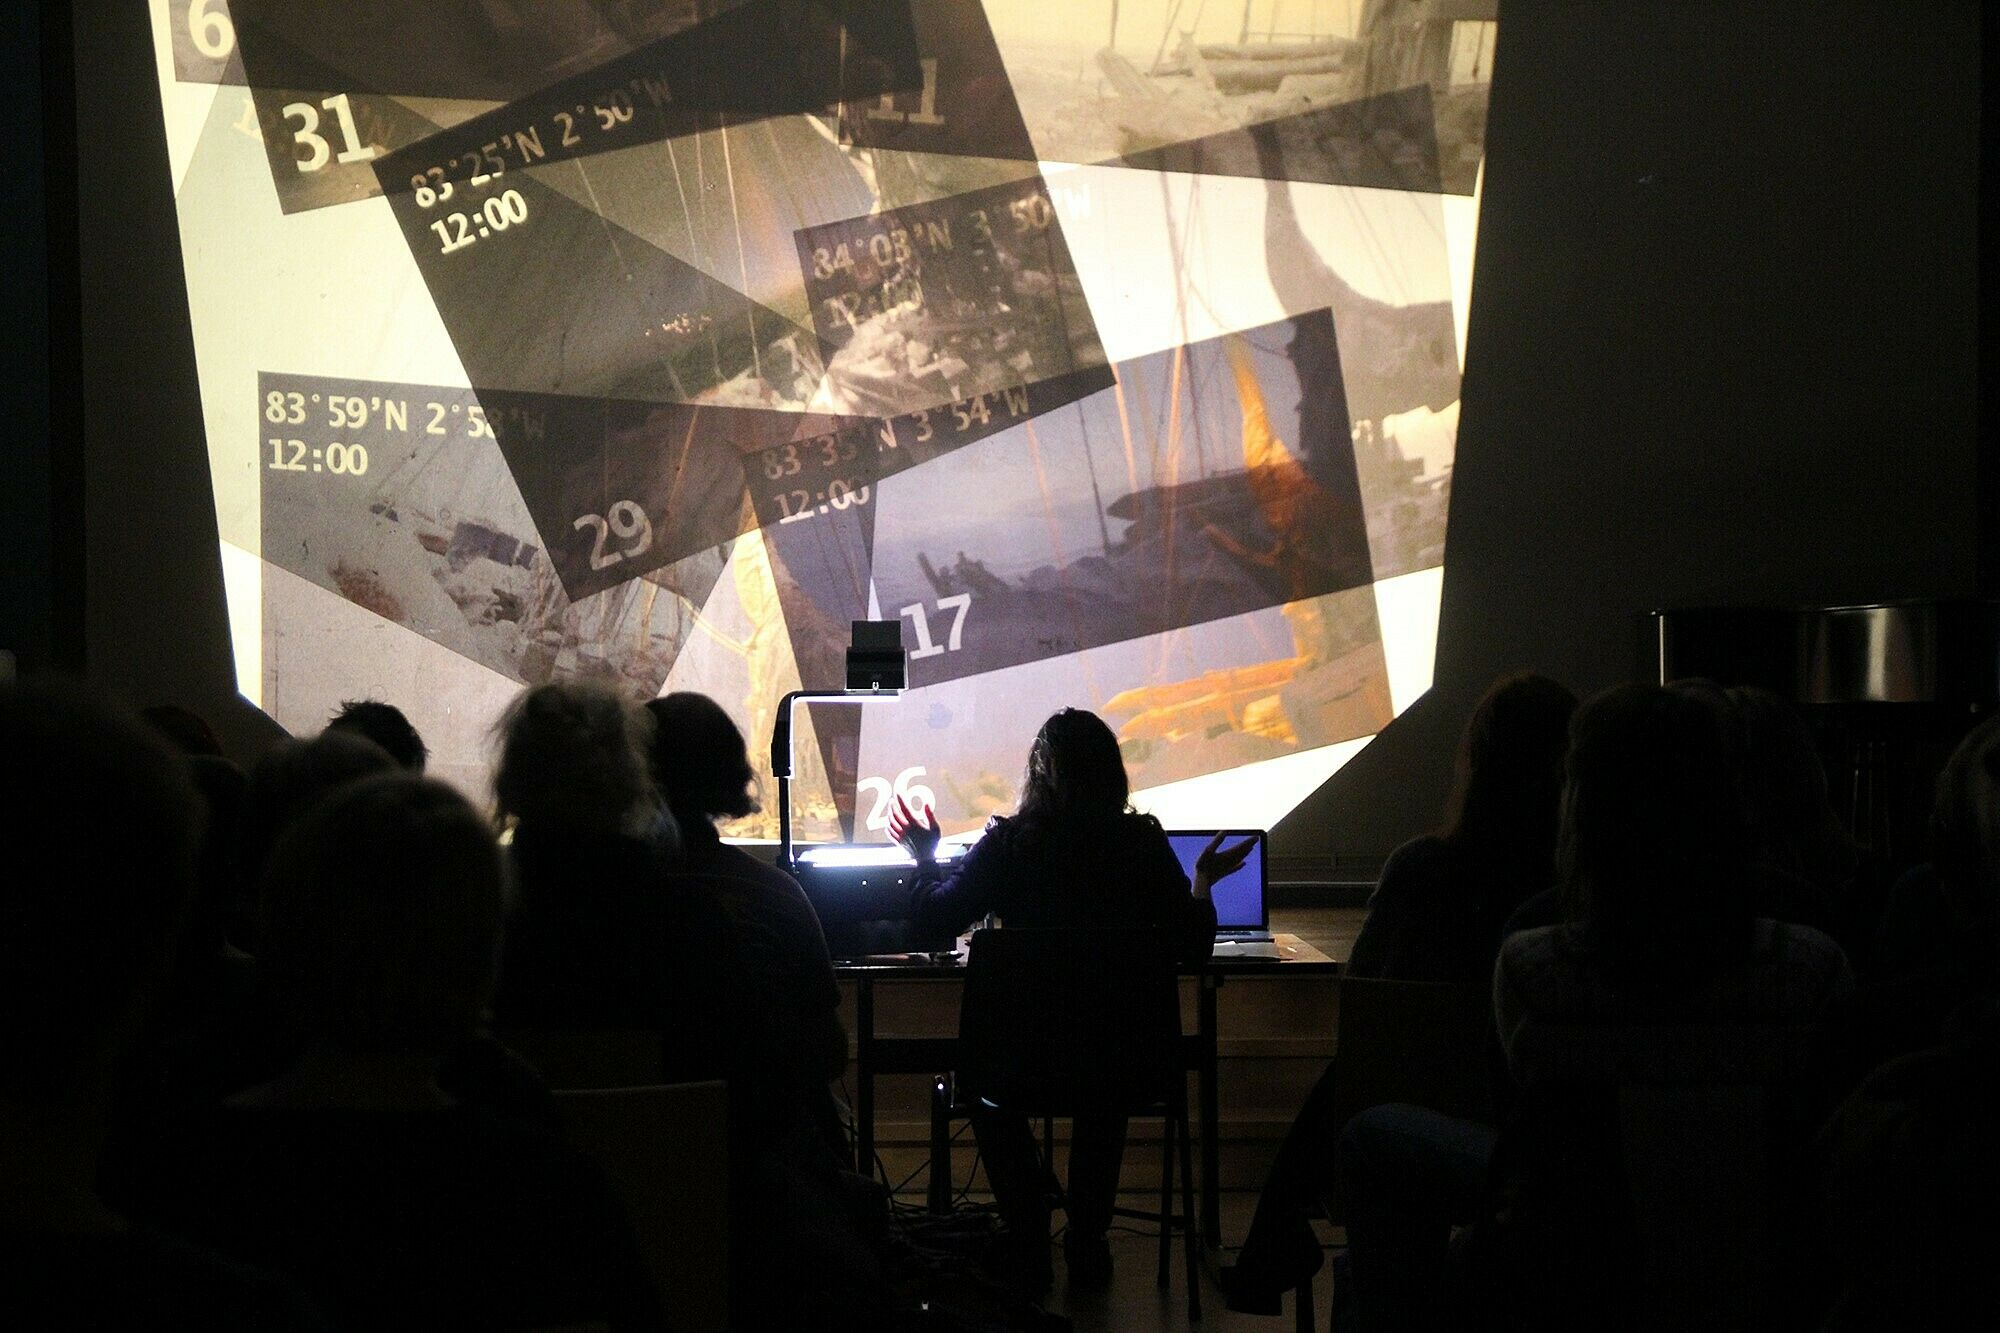 A performance view of a person sitting in front of a wall with projected images.